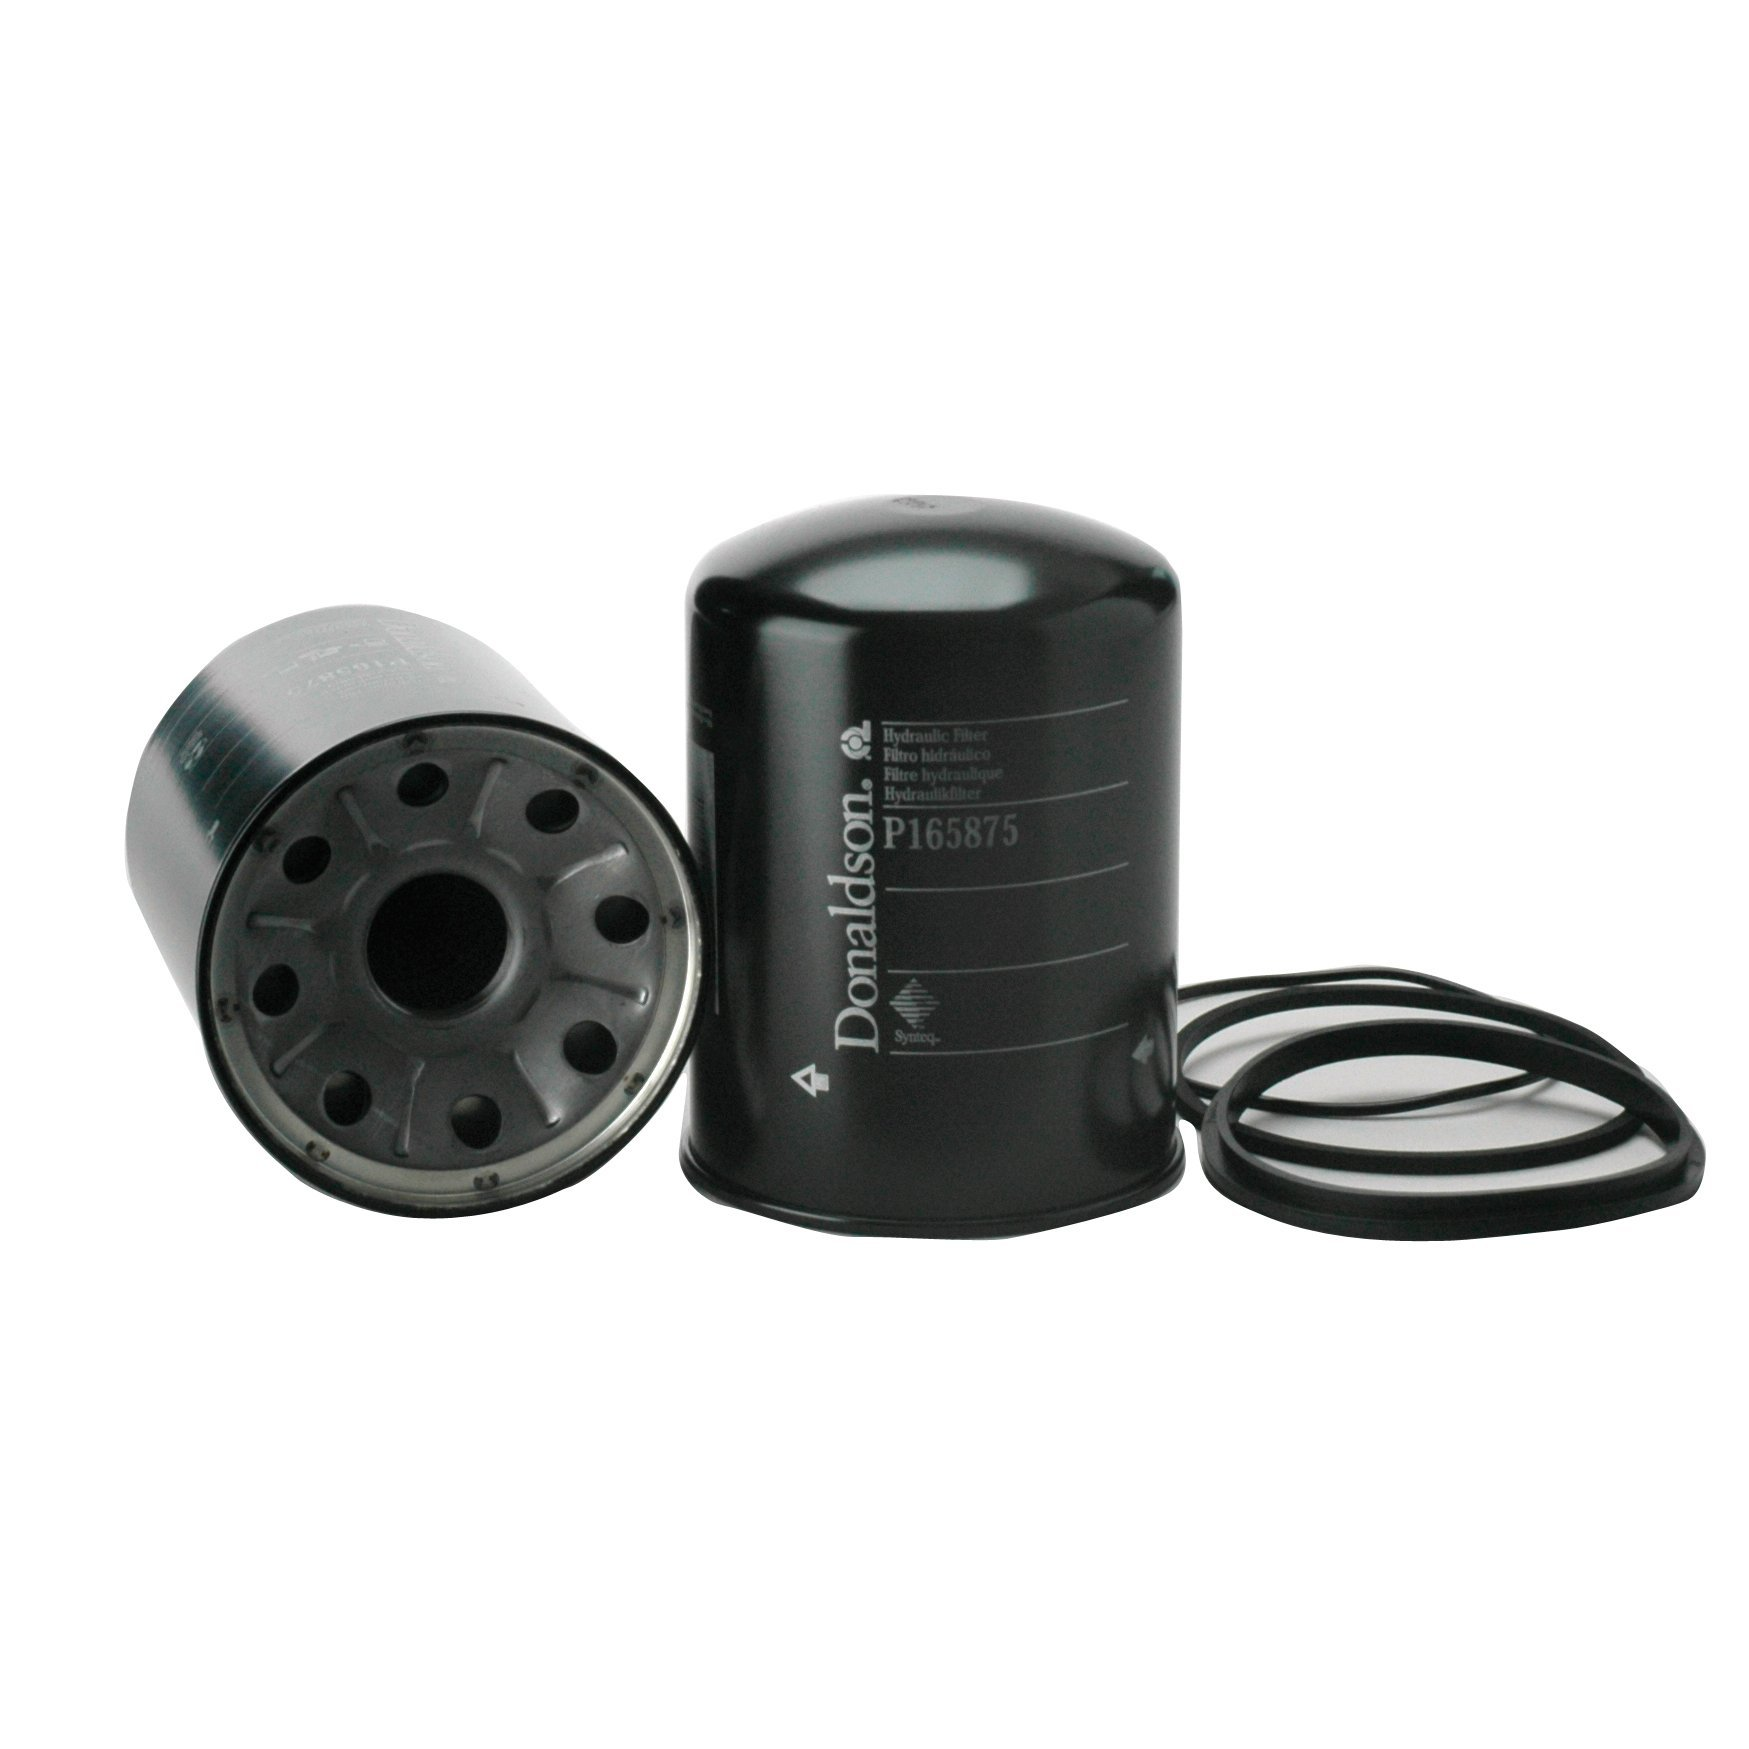 Donaldson P165875 Hydraulic Filter, Spin-on